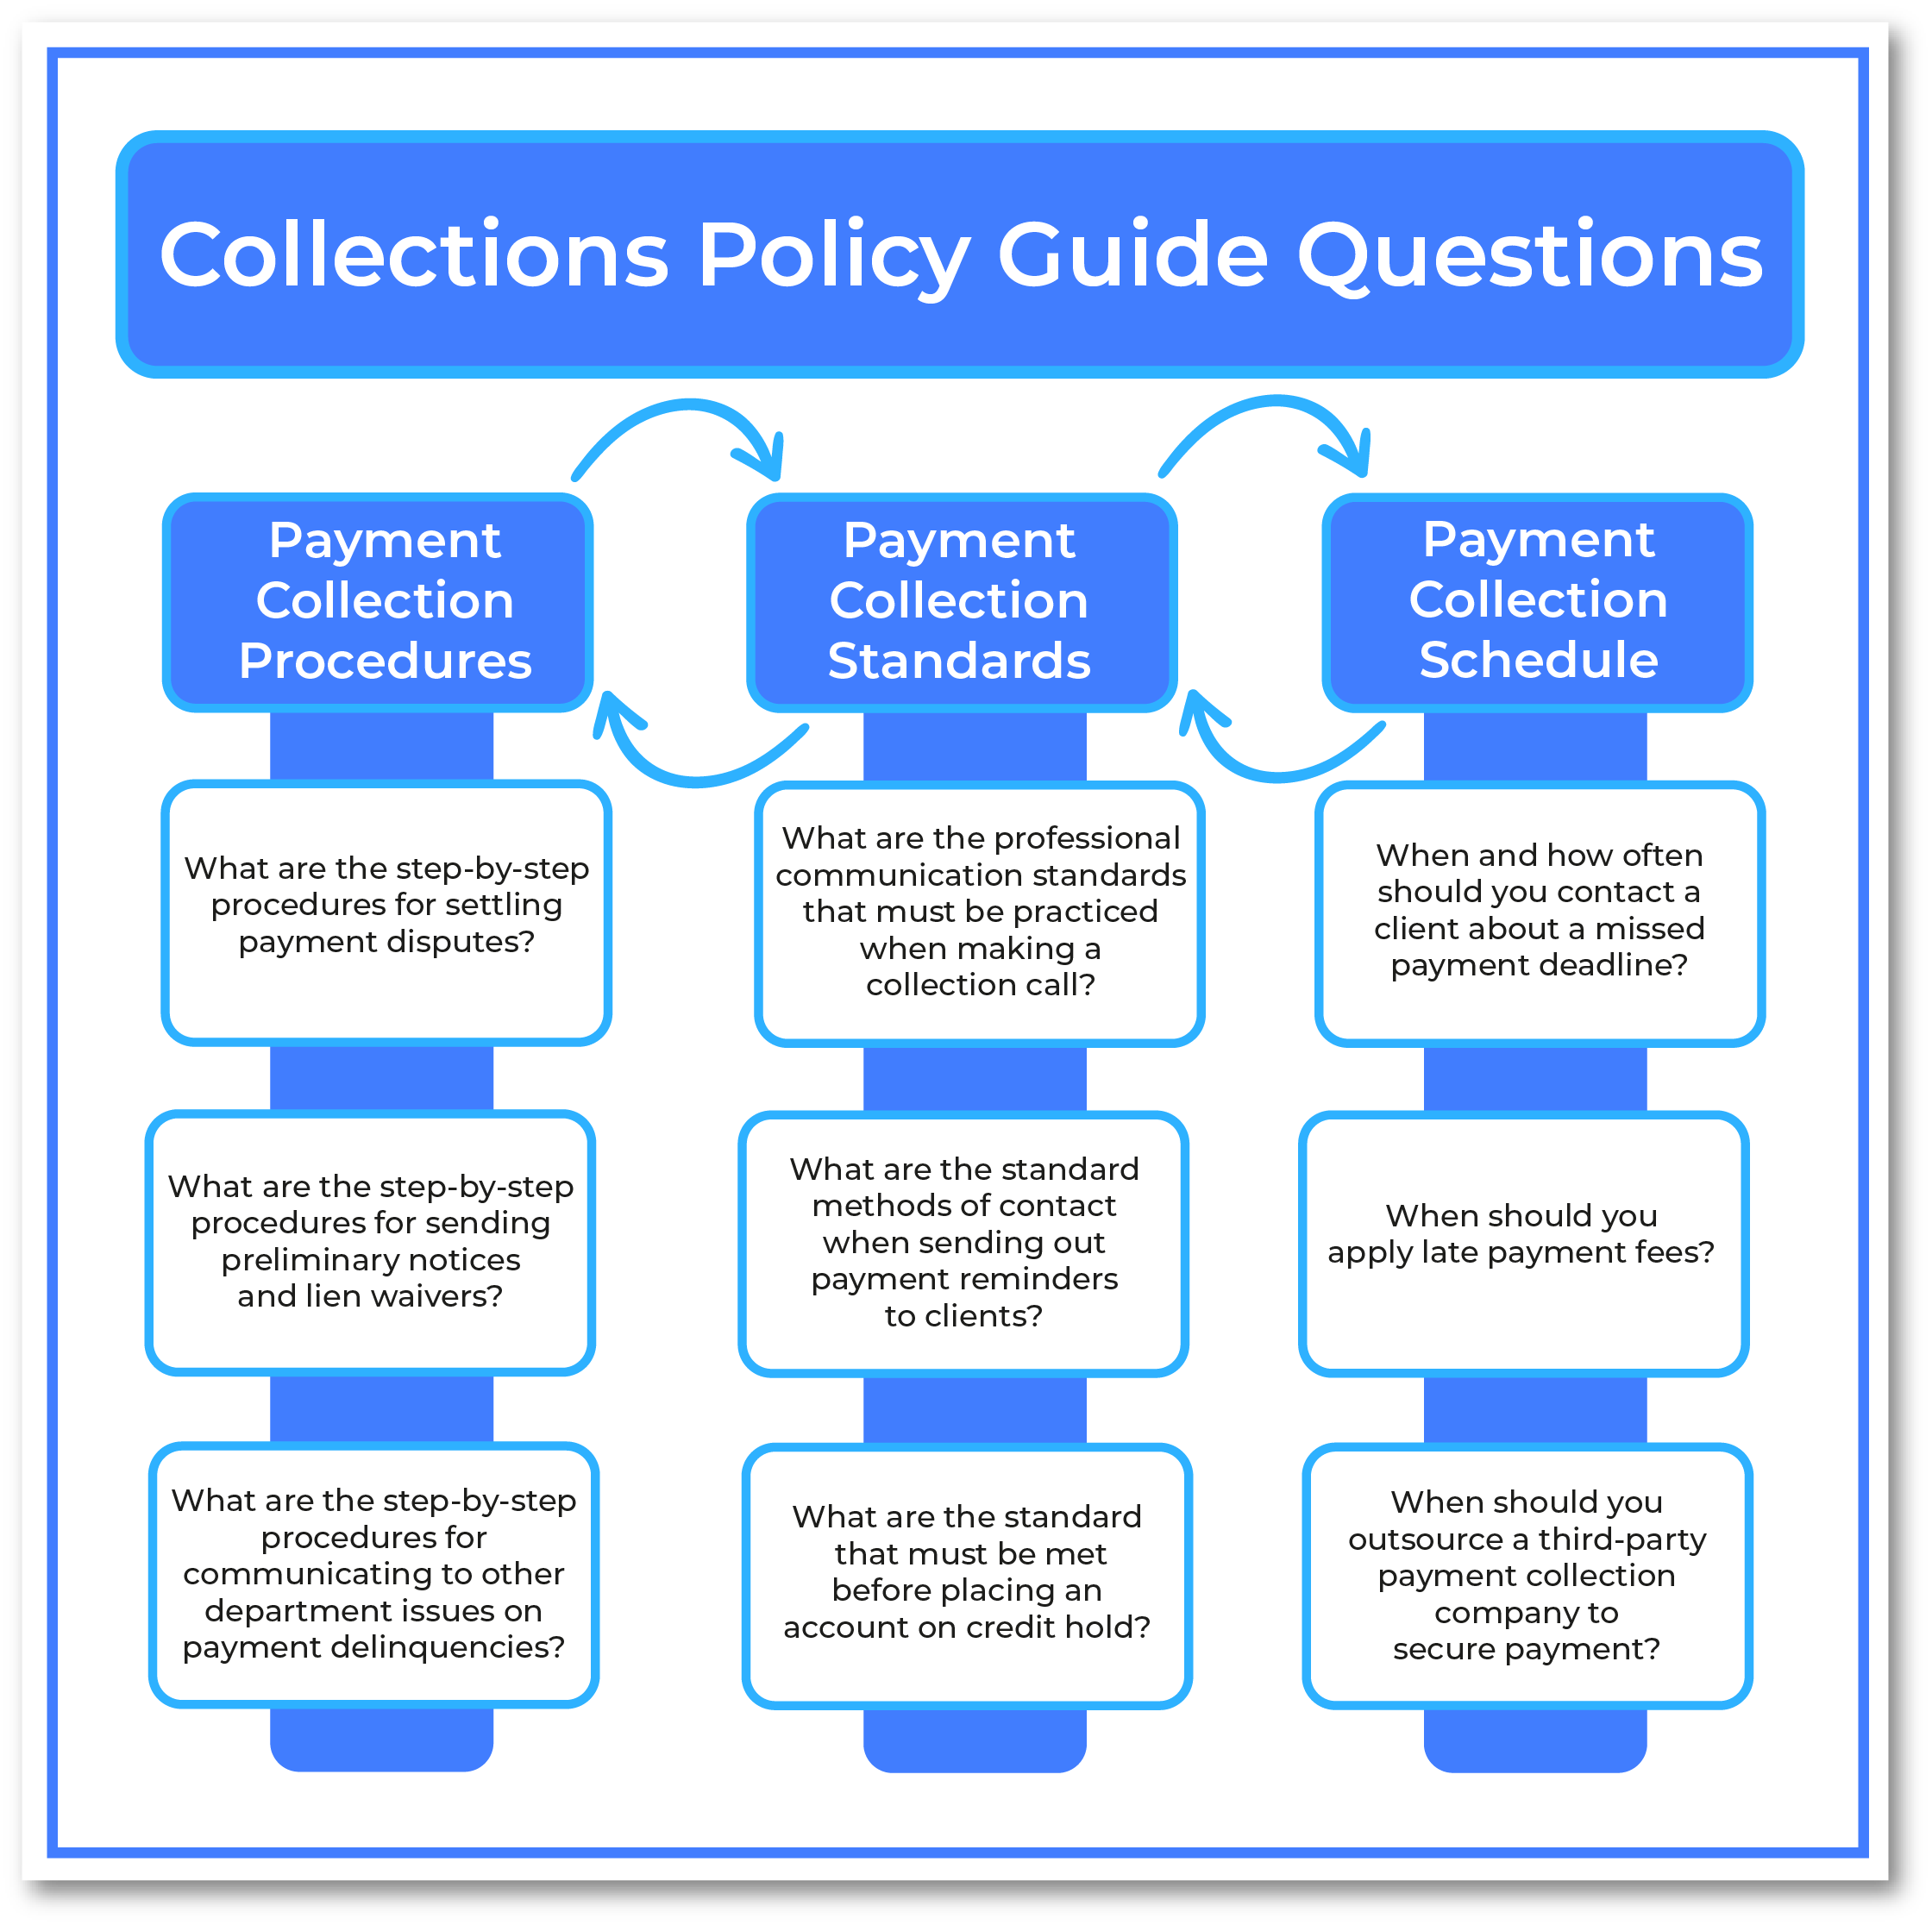 Collections Policy Guide Questions